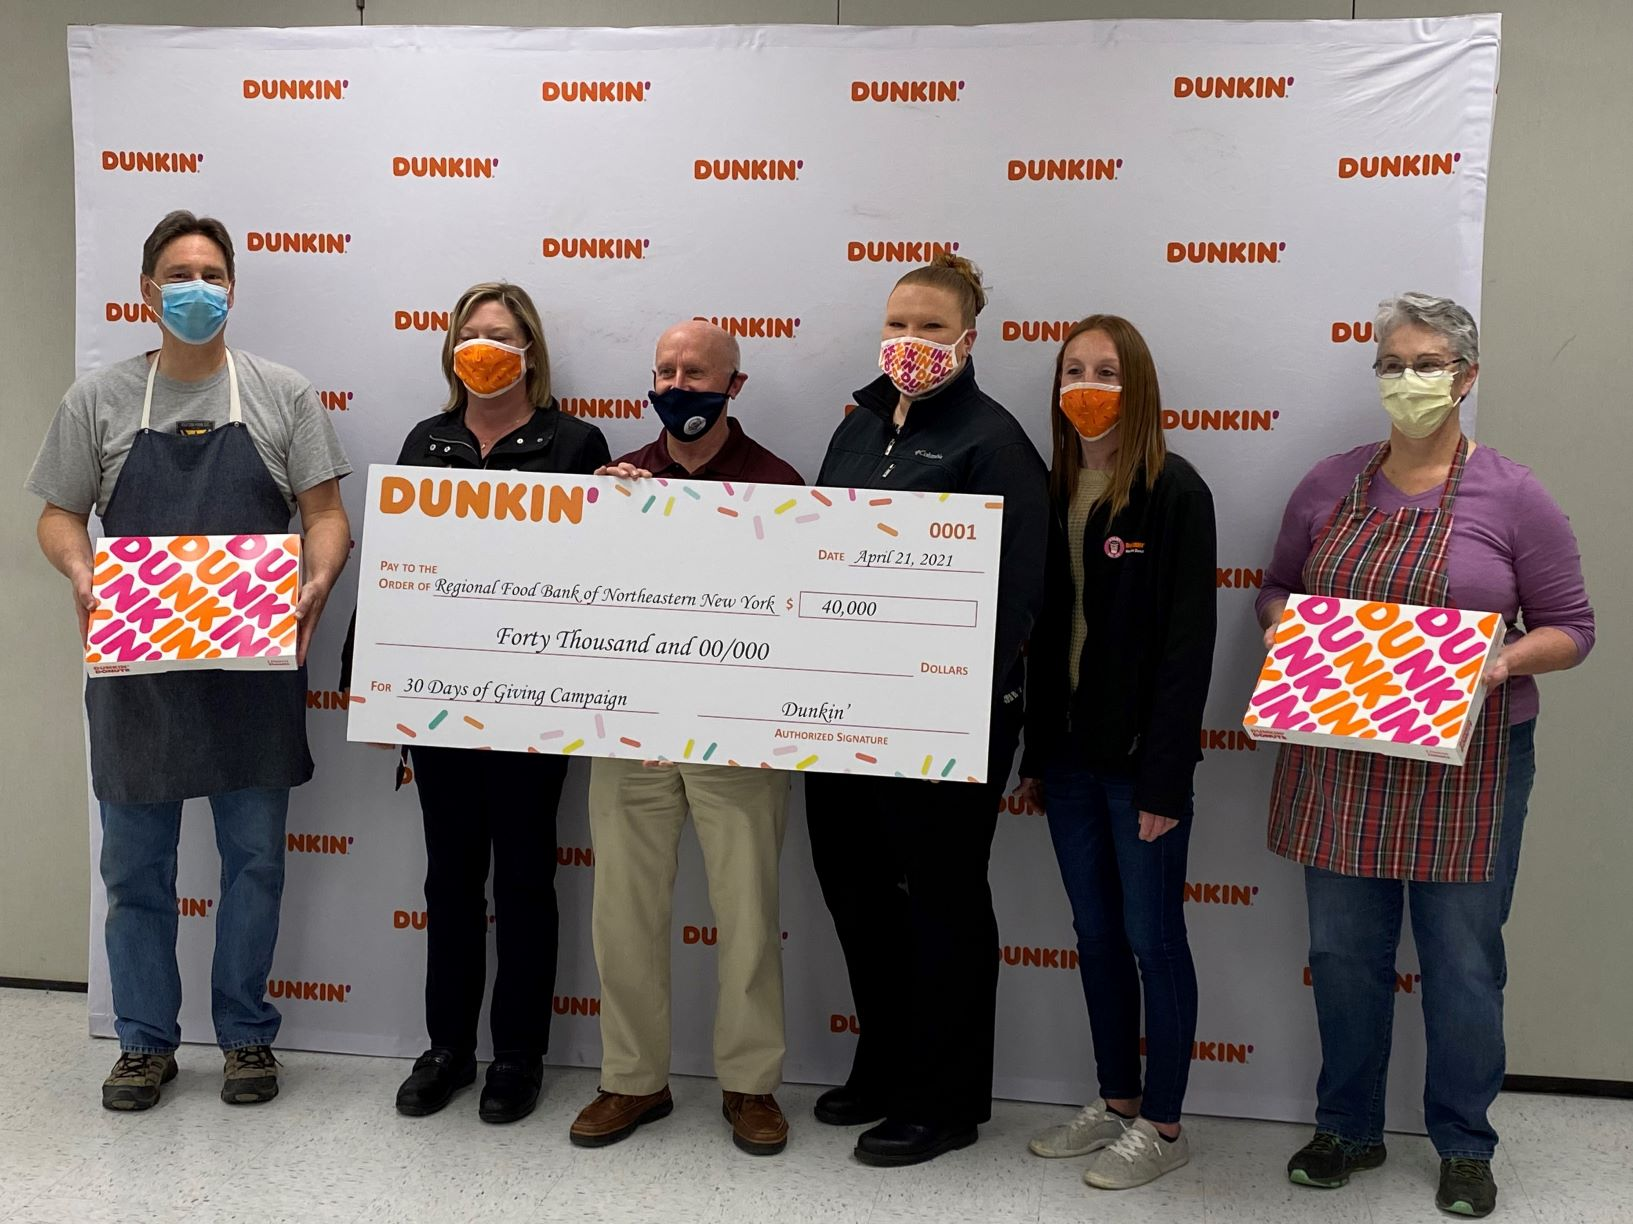 Dunkin-Regional Food Bank of Northeastern New York